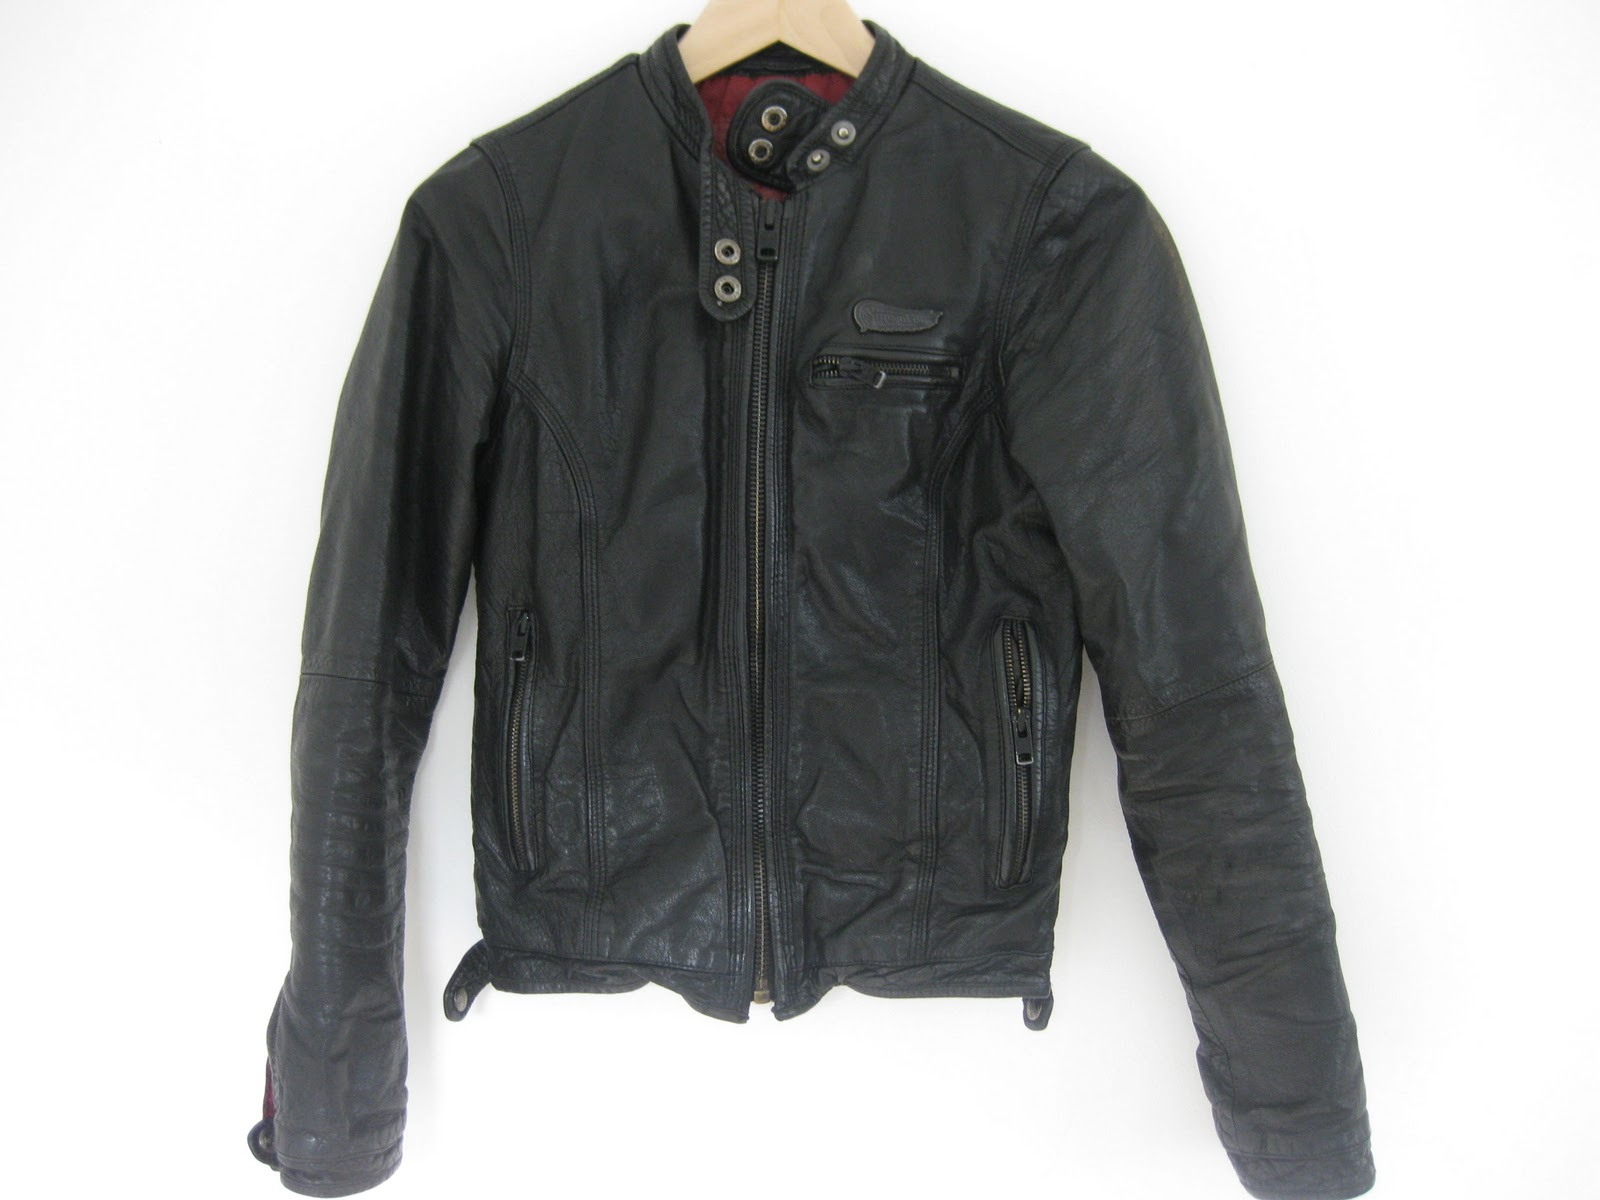 Classic leather moto jacket from Superdry